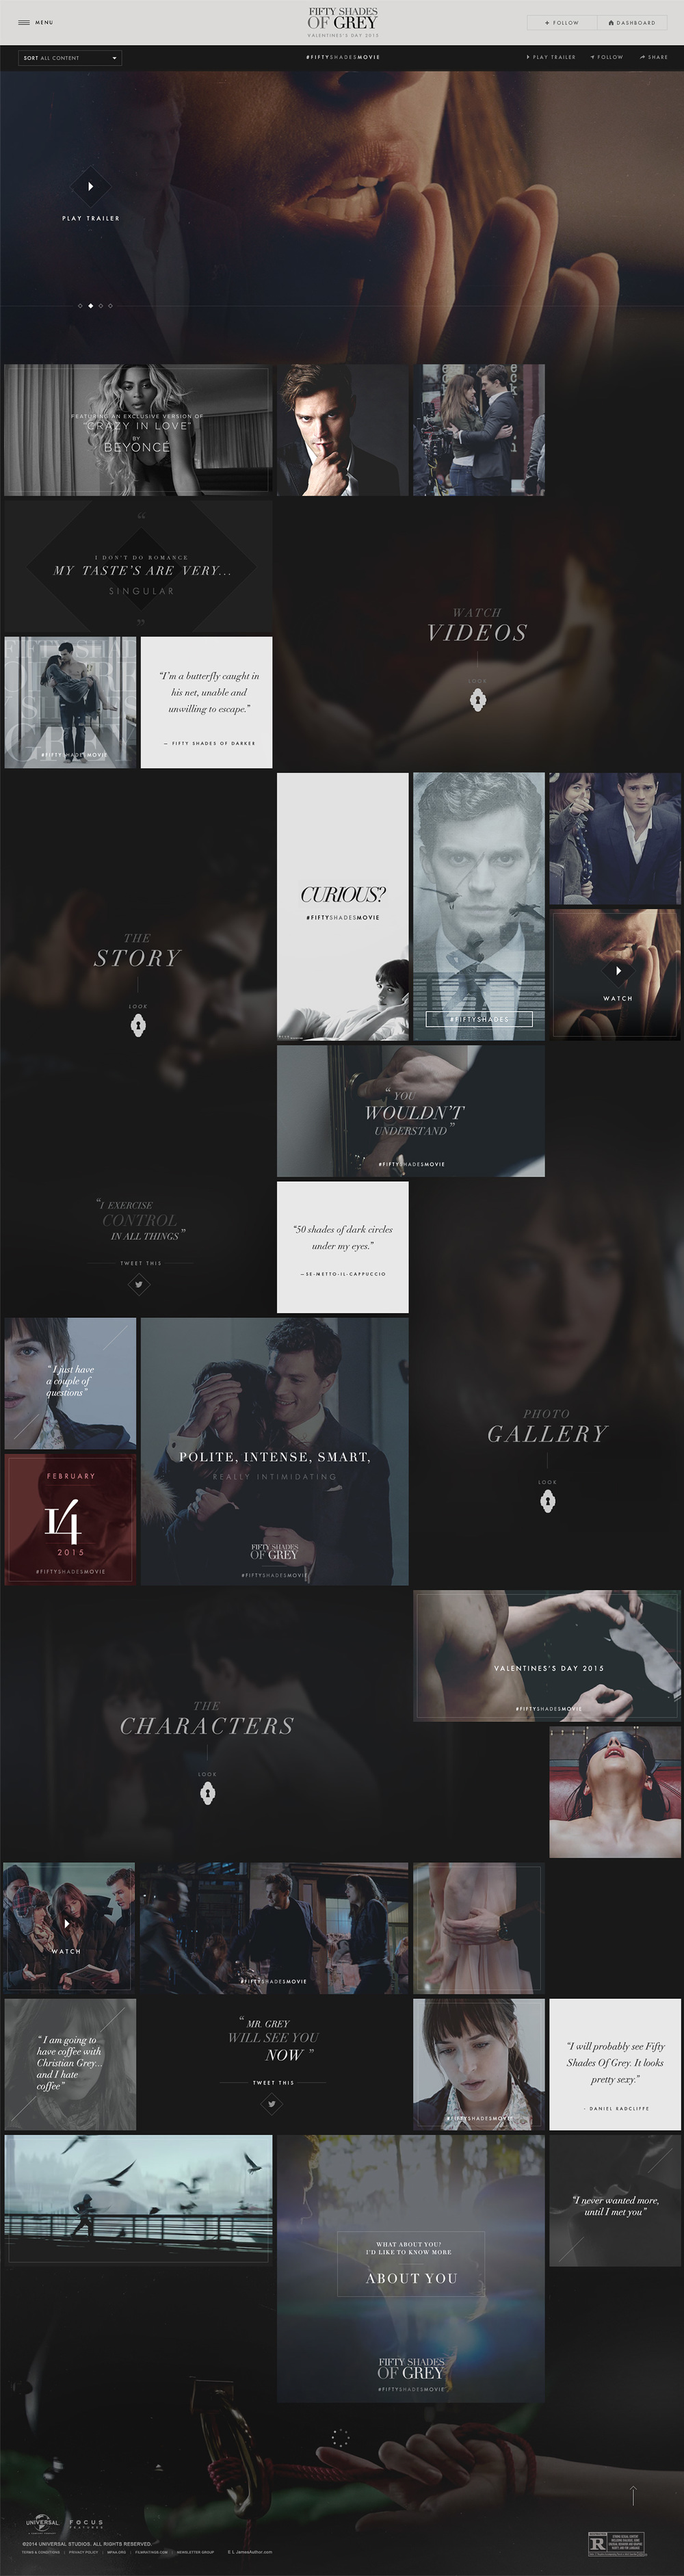 Fifty Shades of Grey by keithevans.com